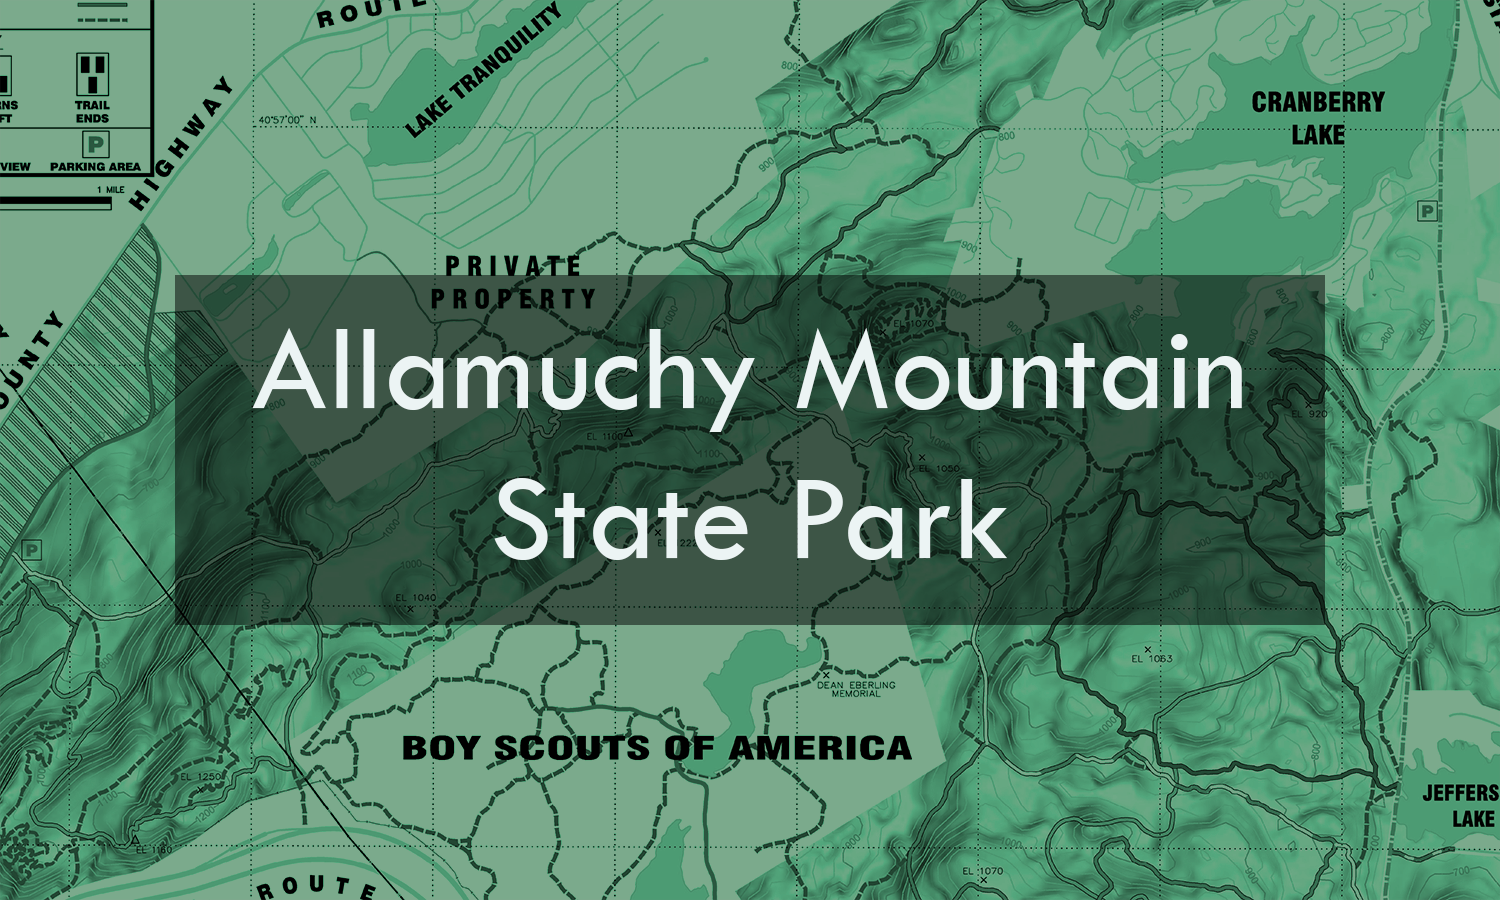 There are more than 14 miles of marked trails available for hiking, mountain biking and horseback riding in the Allamuchy Natural Area.